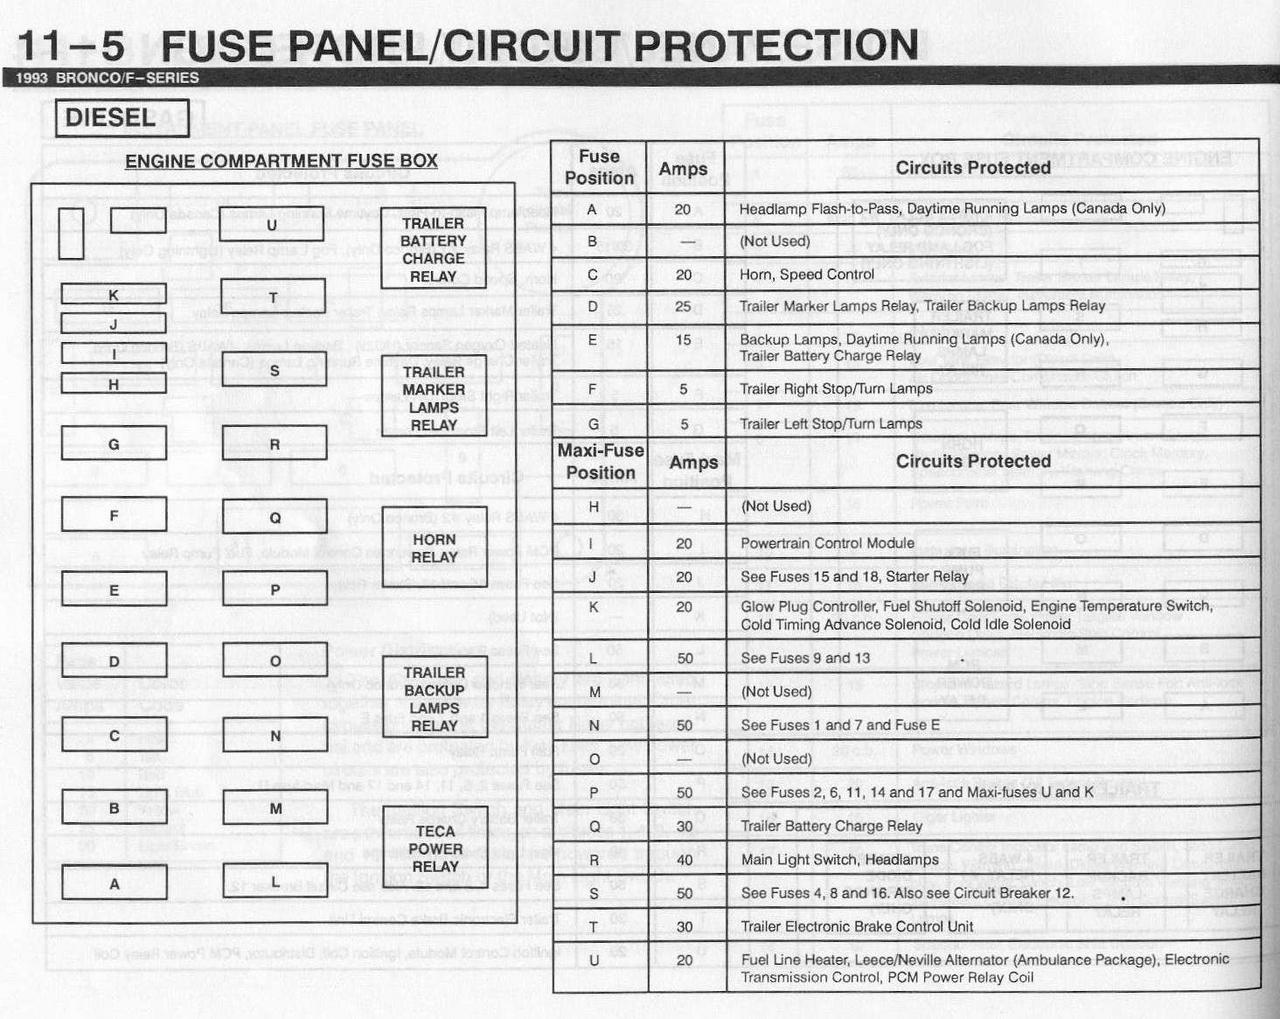 2010 Ford Transit Fuse Box Diagram Wiring Libraries Nissan 370z X Reg Simple Diagramford Layout Diagrams Scematic